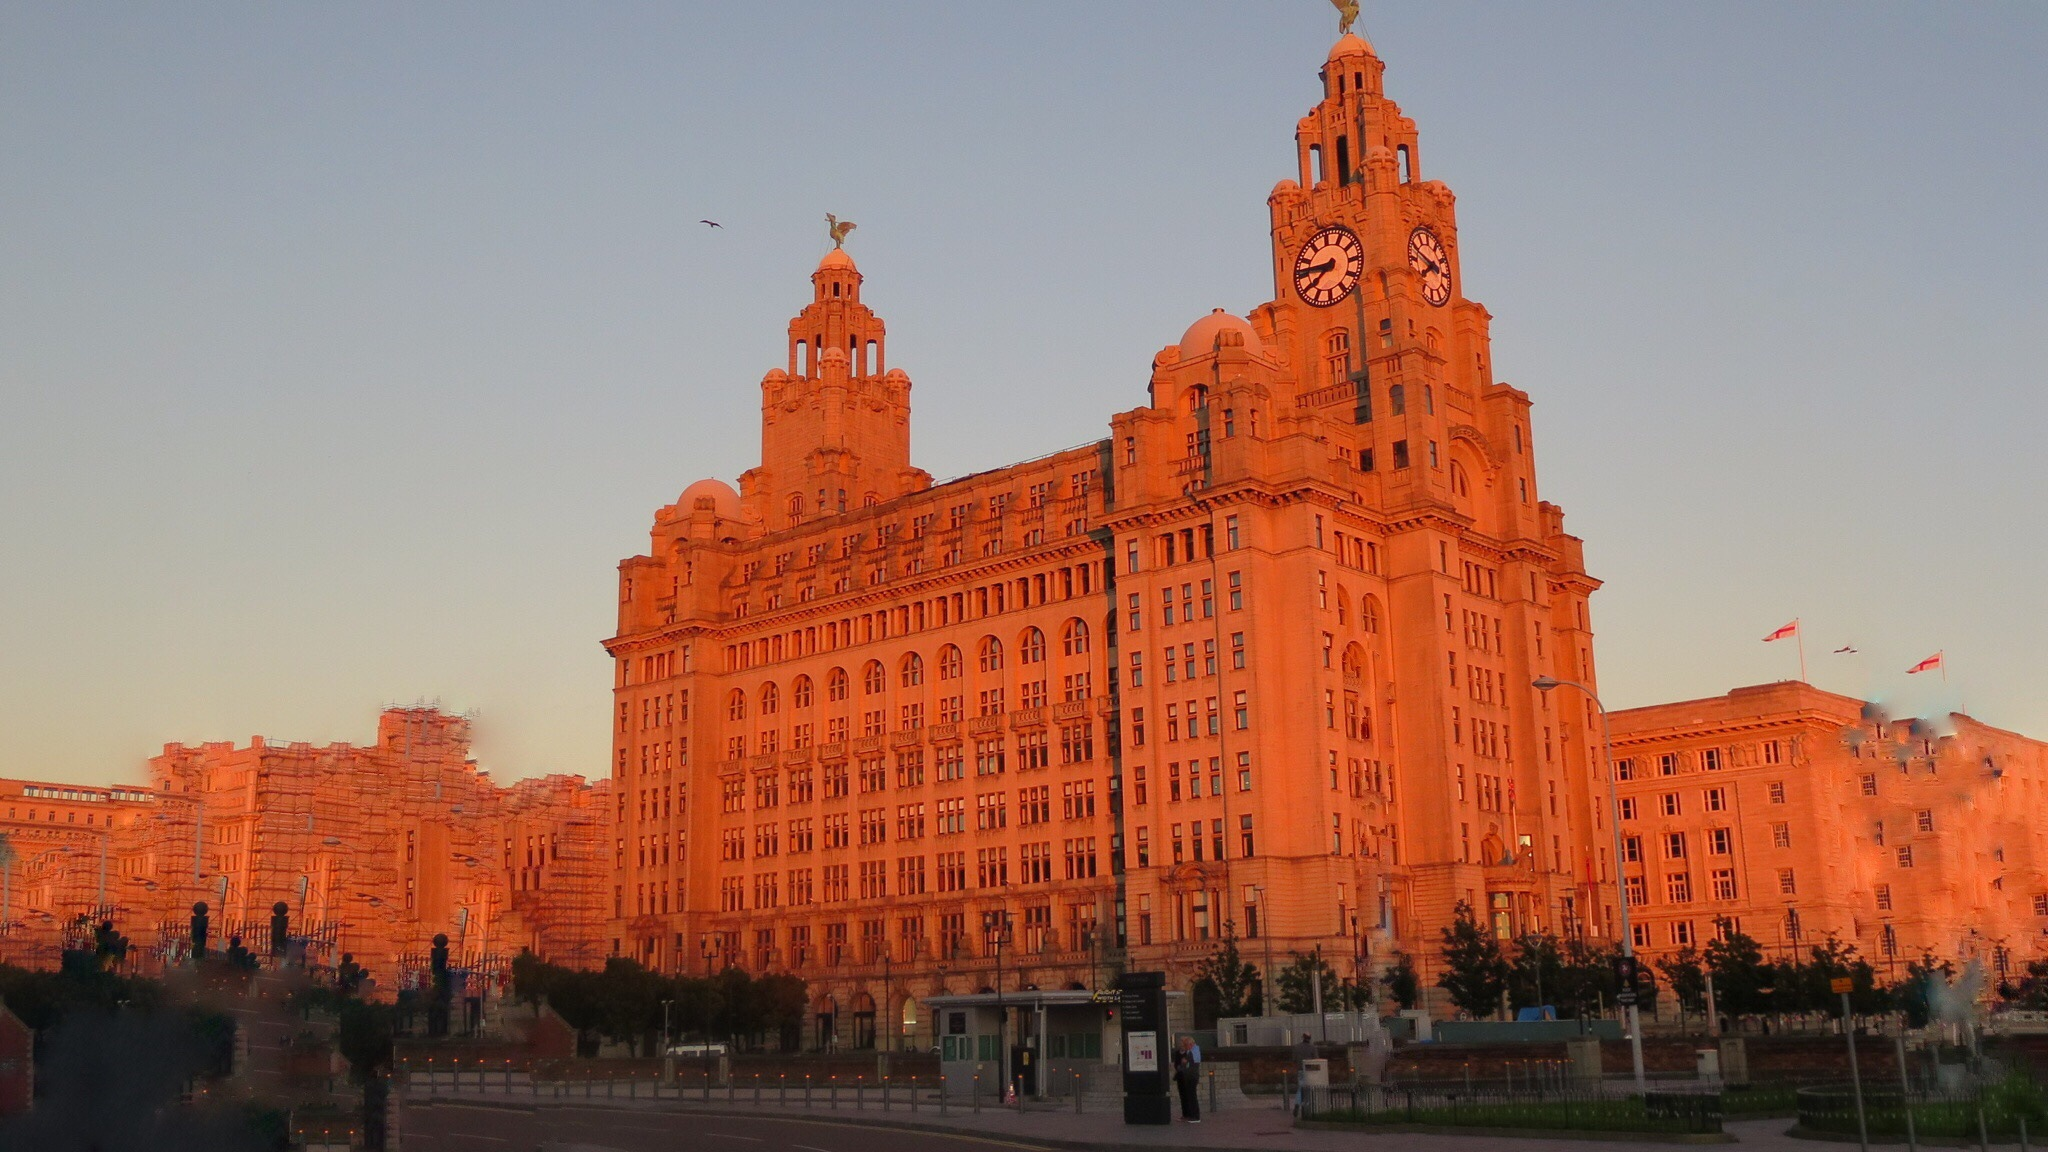 the liver Buildings Liverpool by Terry Reynolds